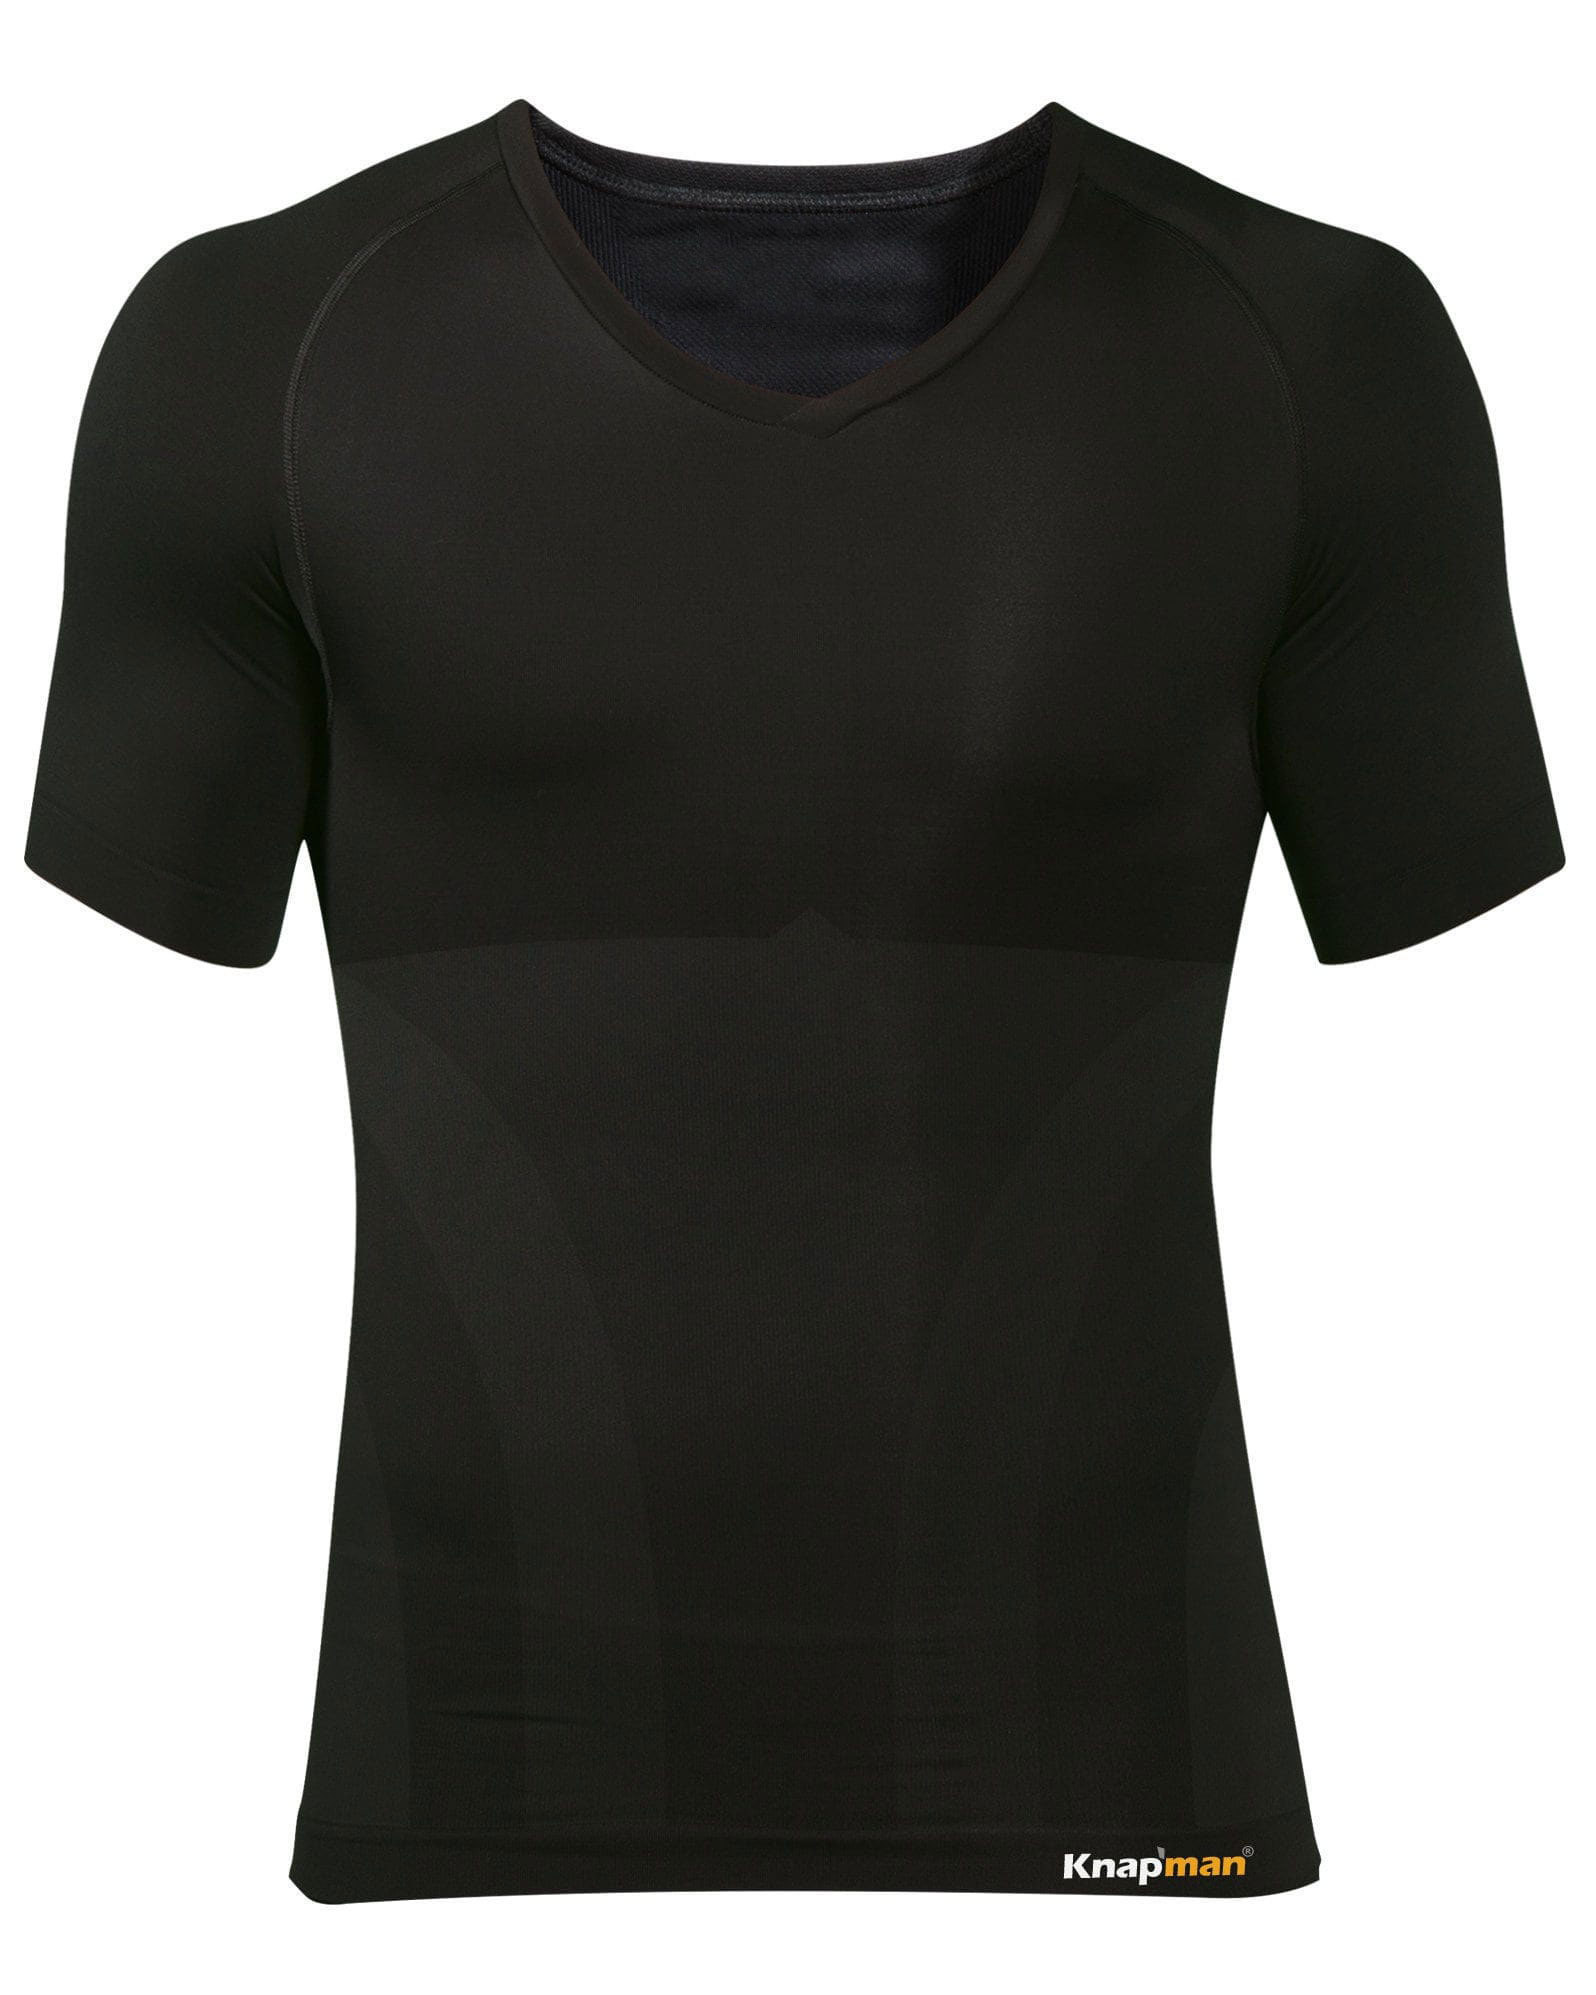 Knap'man Zoned Cotton Comfort shirt schwarz